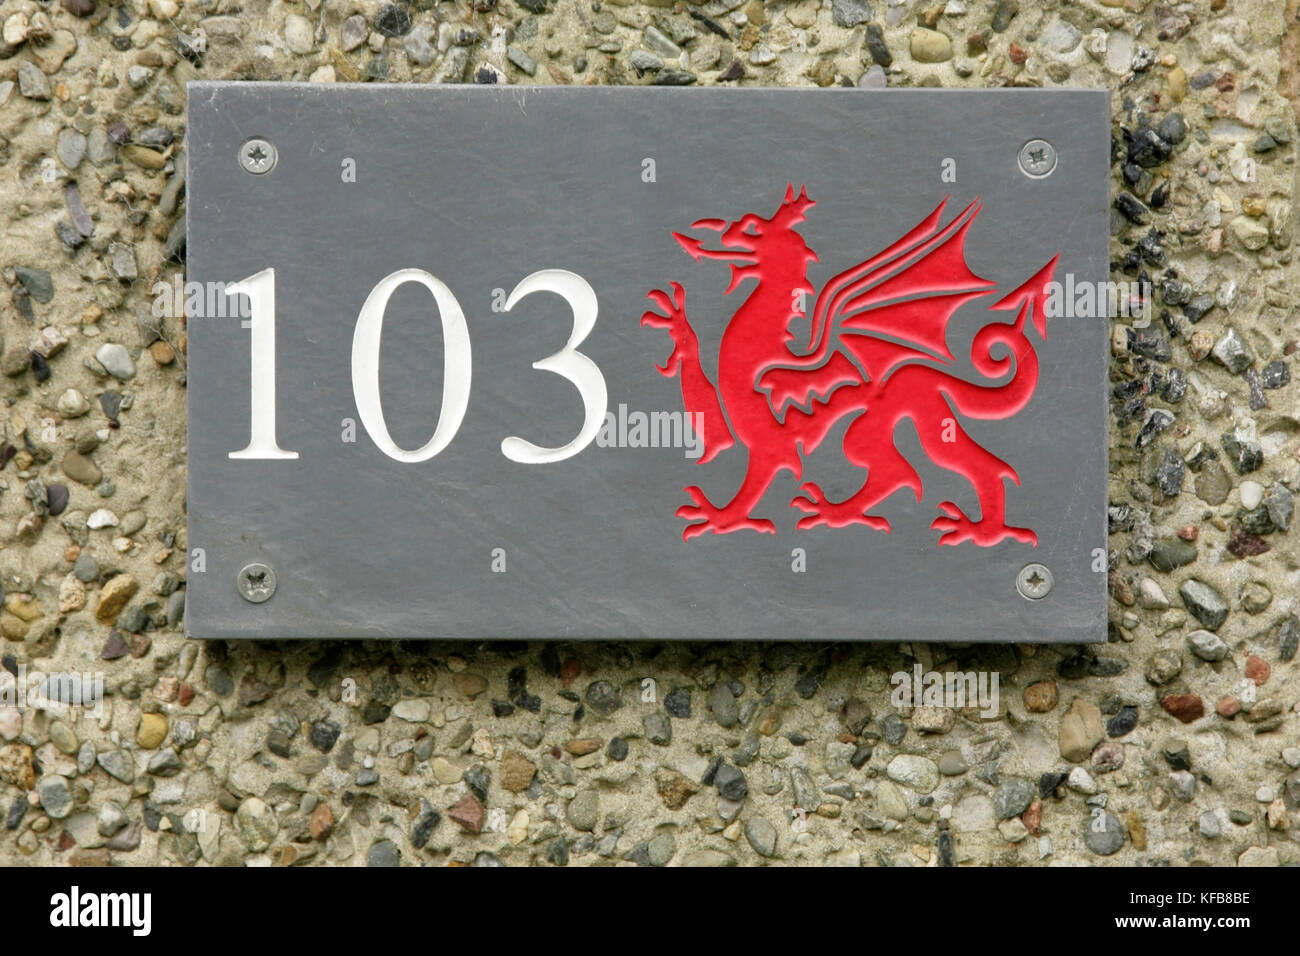 House Number Plaque Stock Photos Amp House Number Plaque